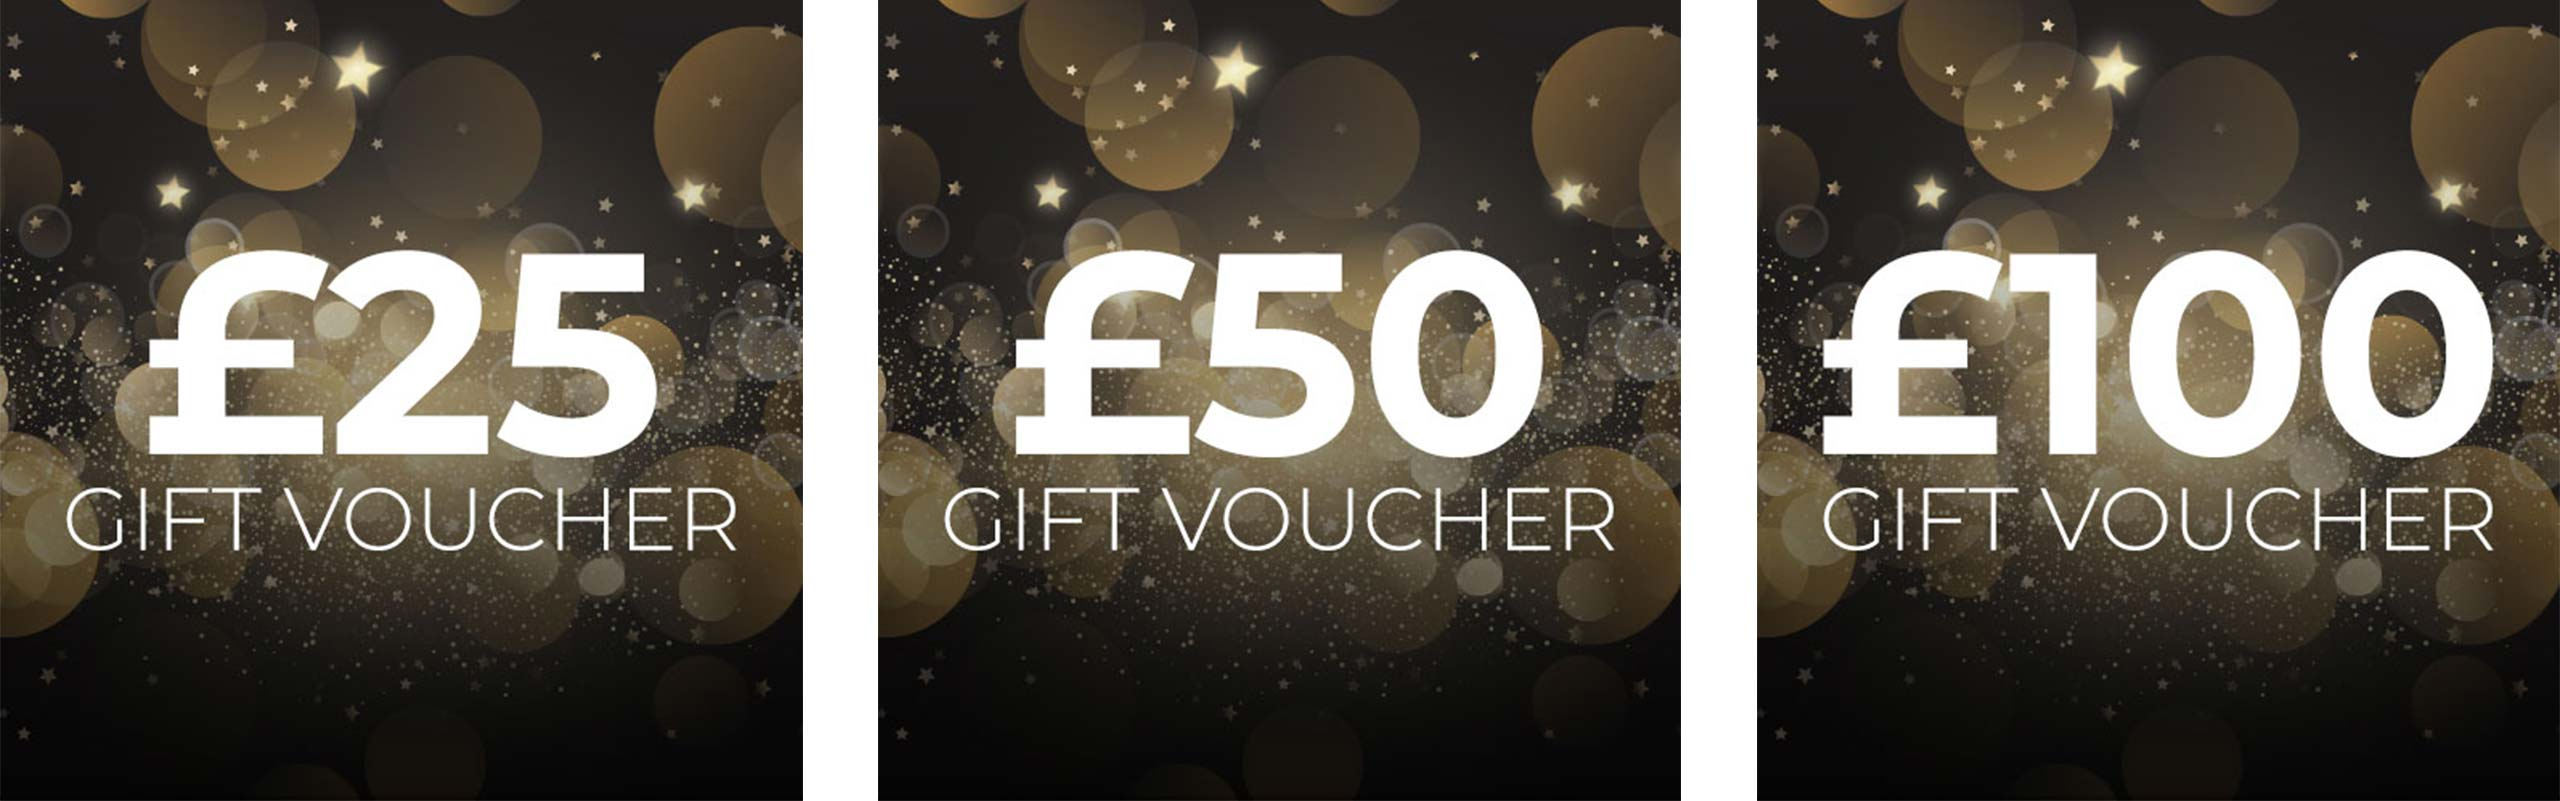 If you're not sure what you want to buy, then check out our 2tall Gift Vouchers